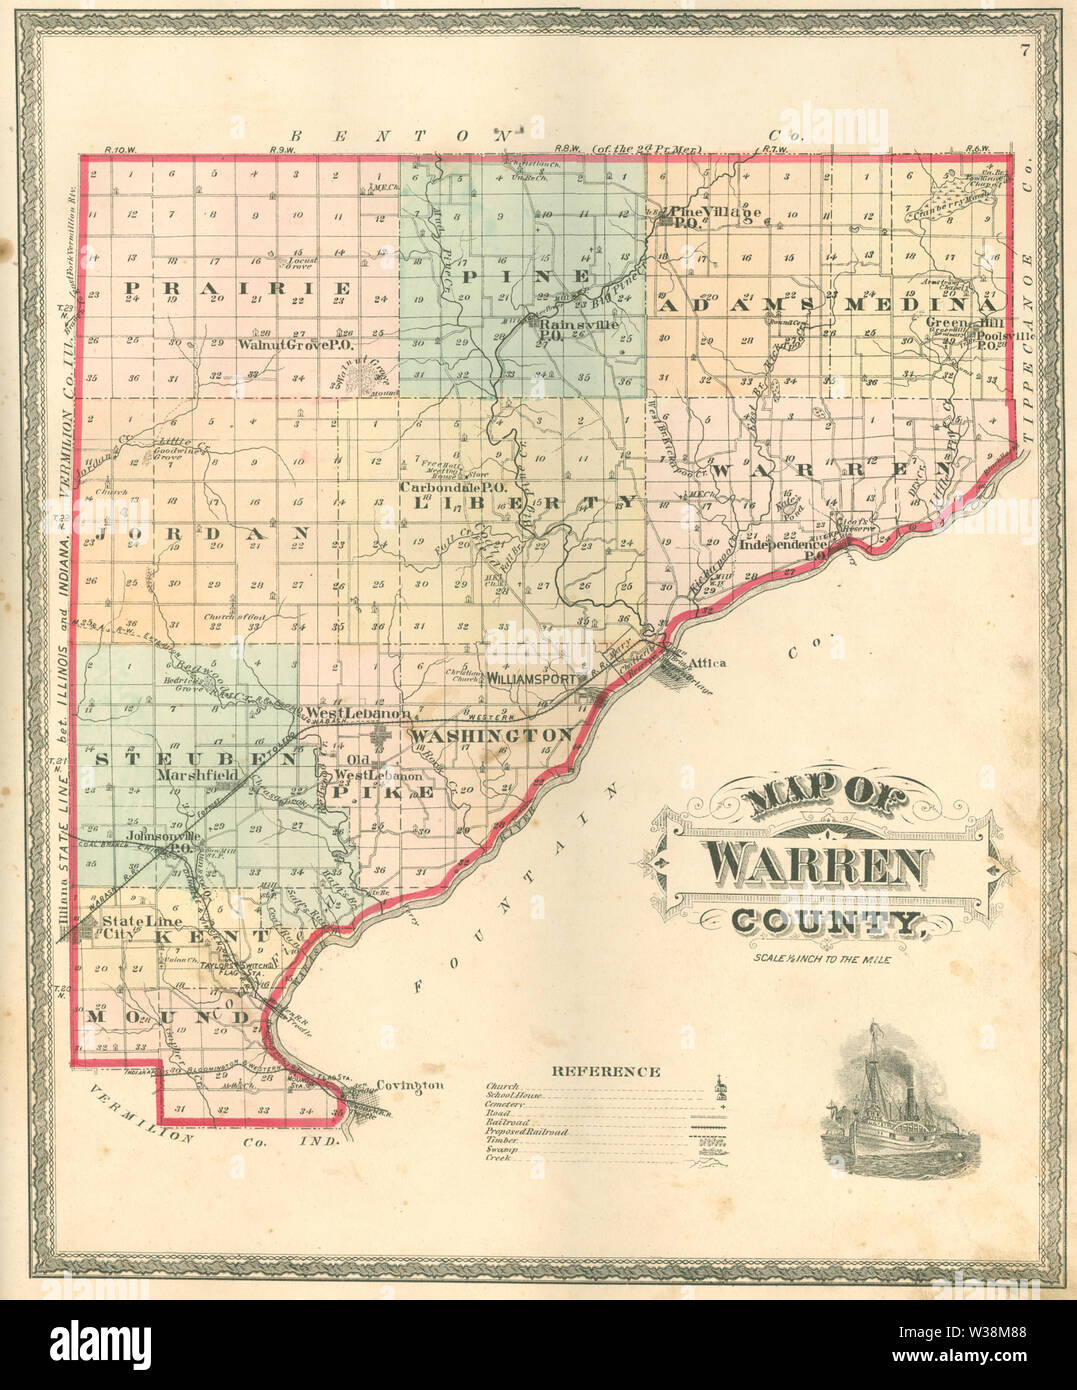 Warren County, Indiana map from 1877 atlas - Stock Image